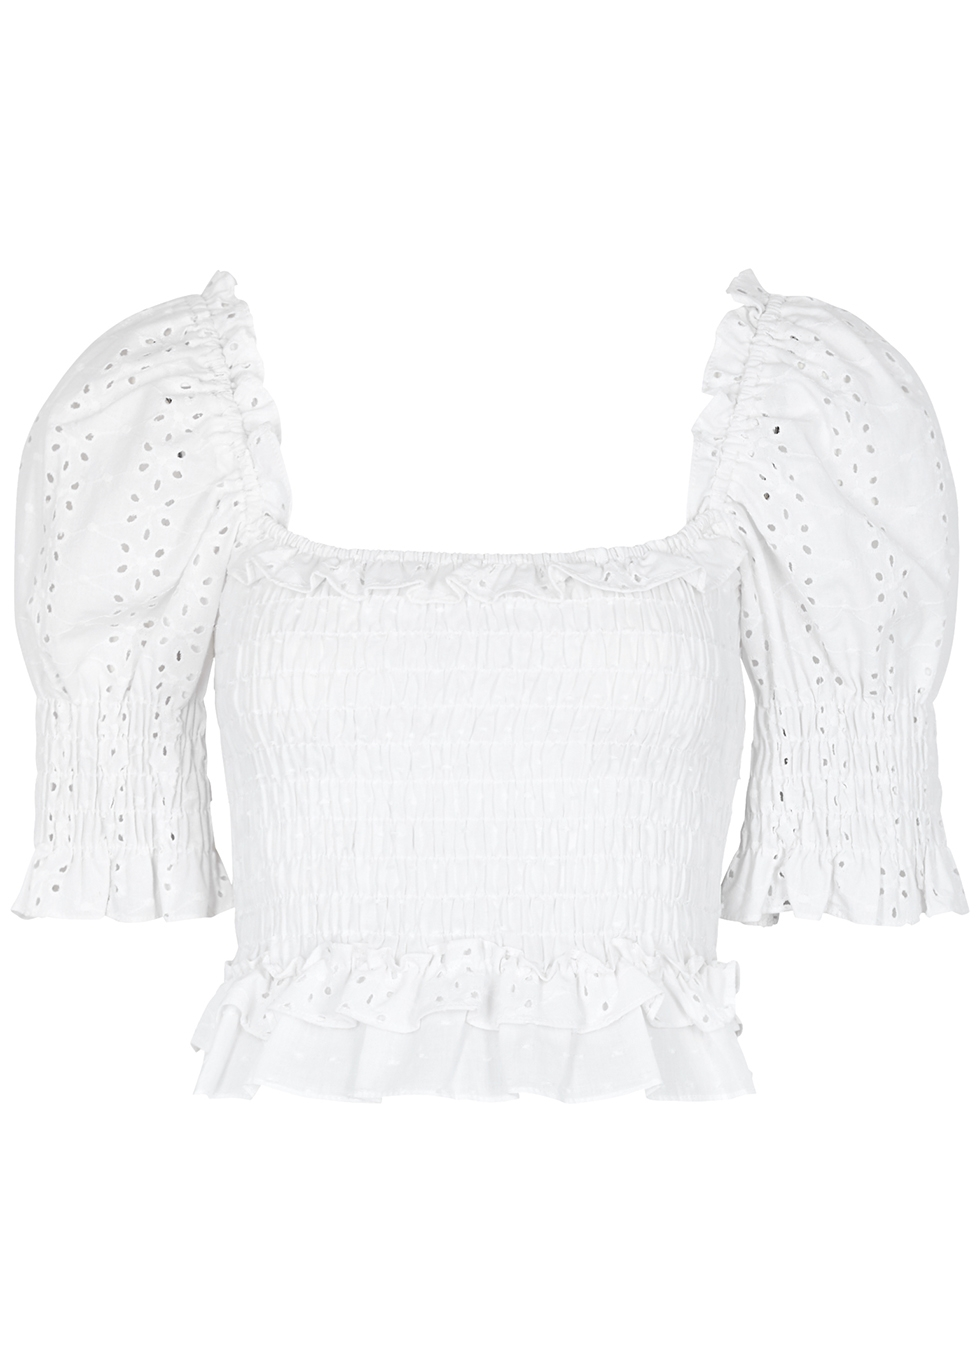 Misa ABBEY WHITE BRODERIE ANGLAISE TOP